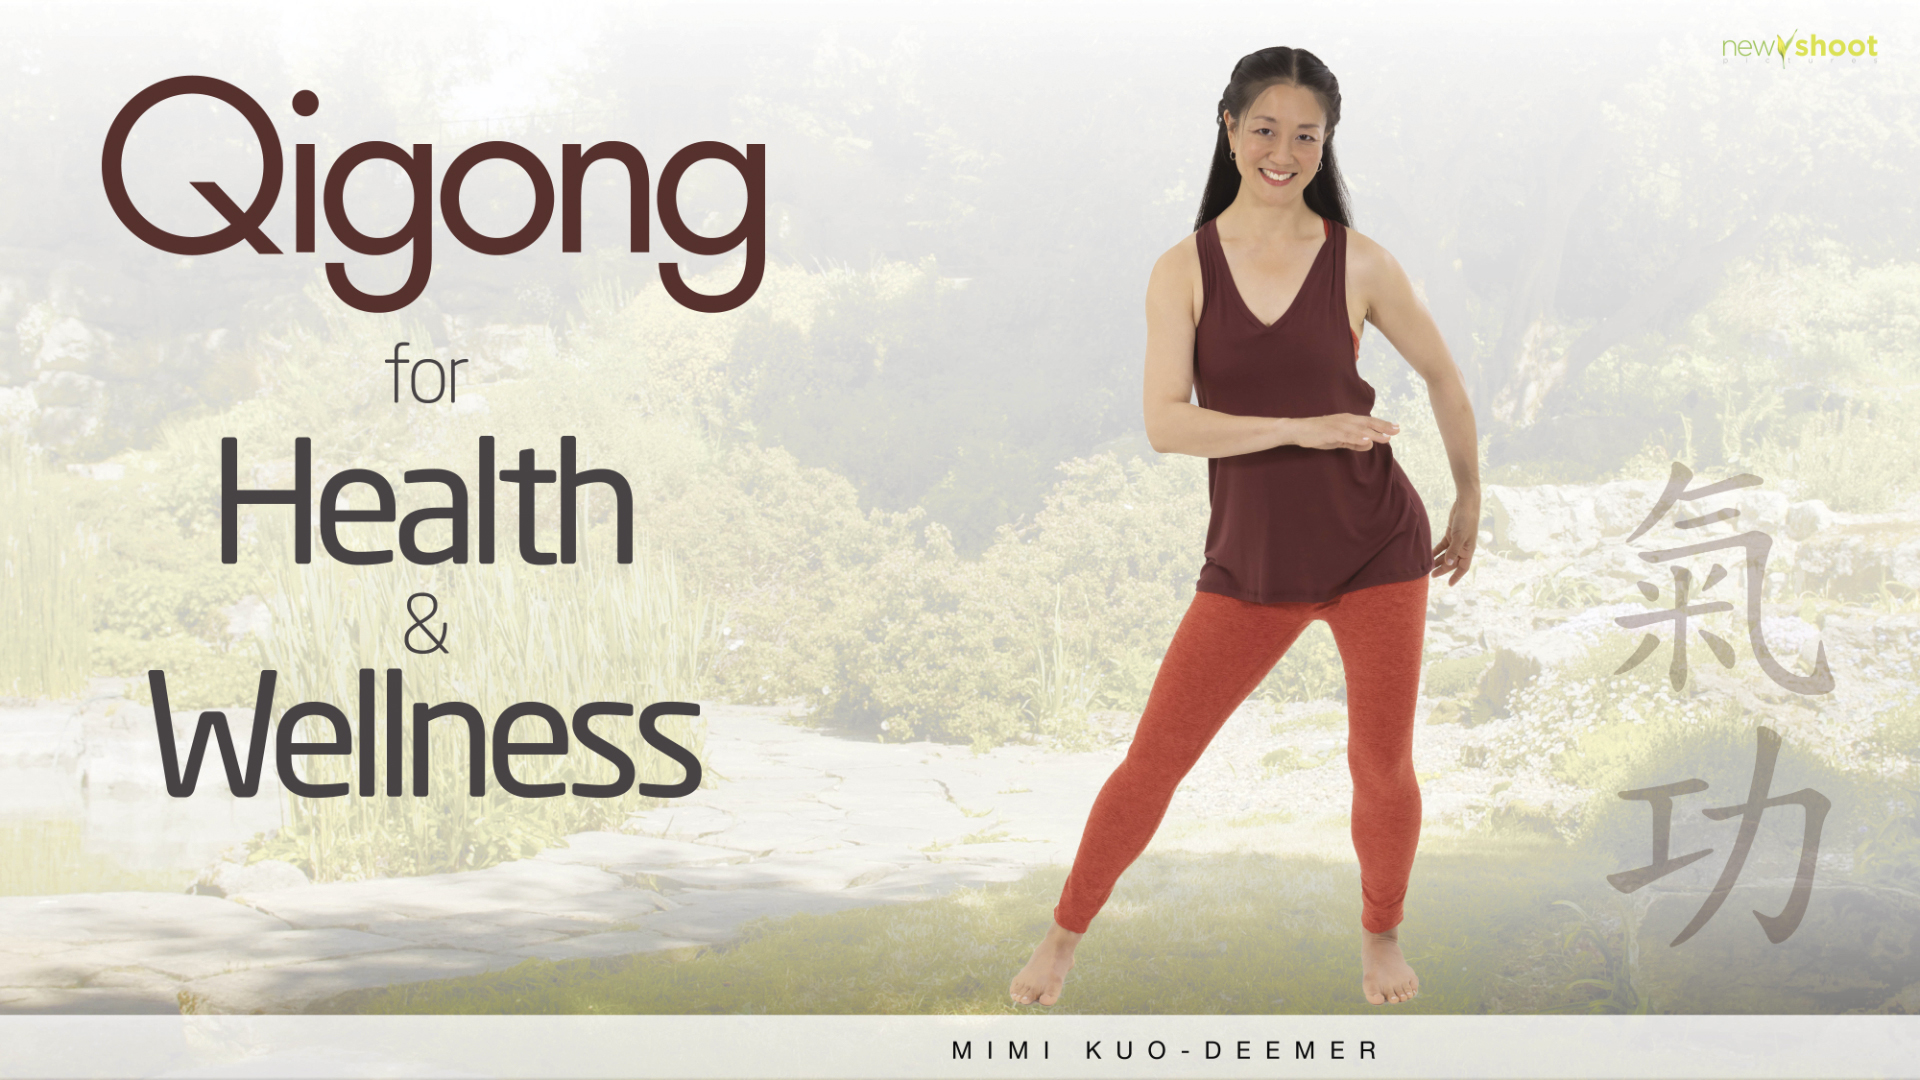 Qigong for Health and Wellness